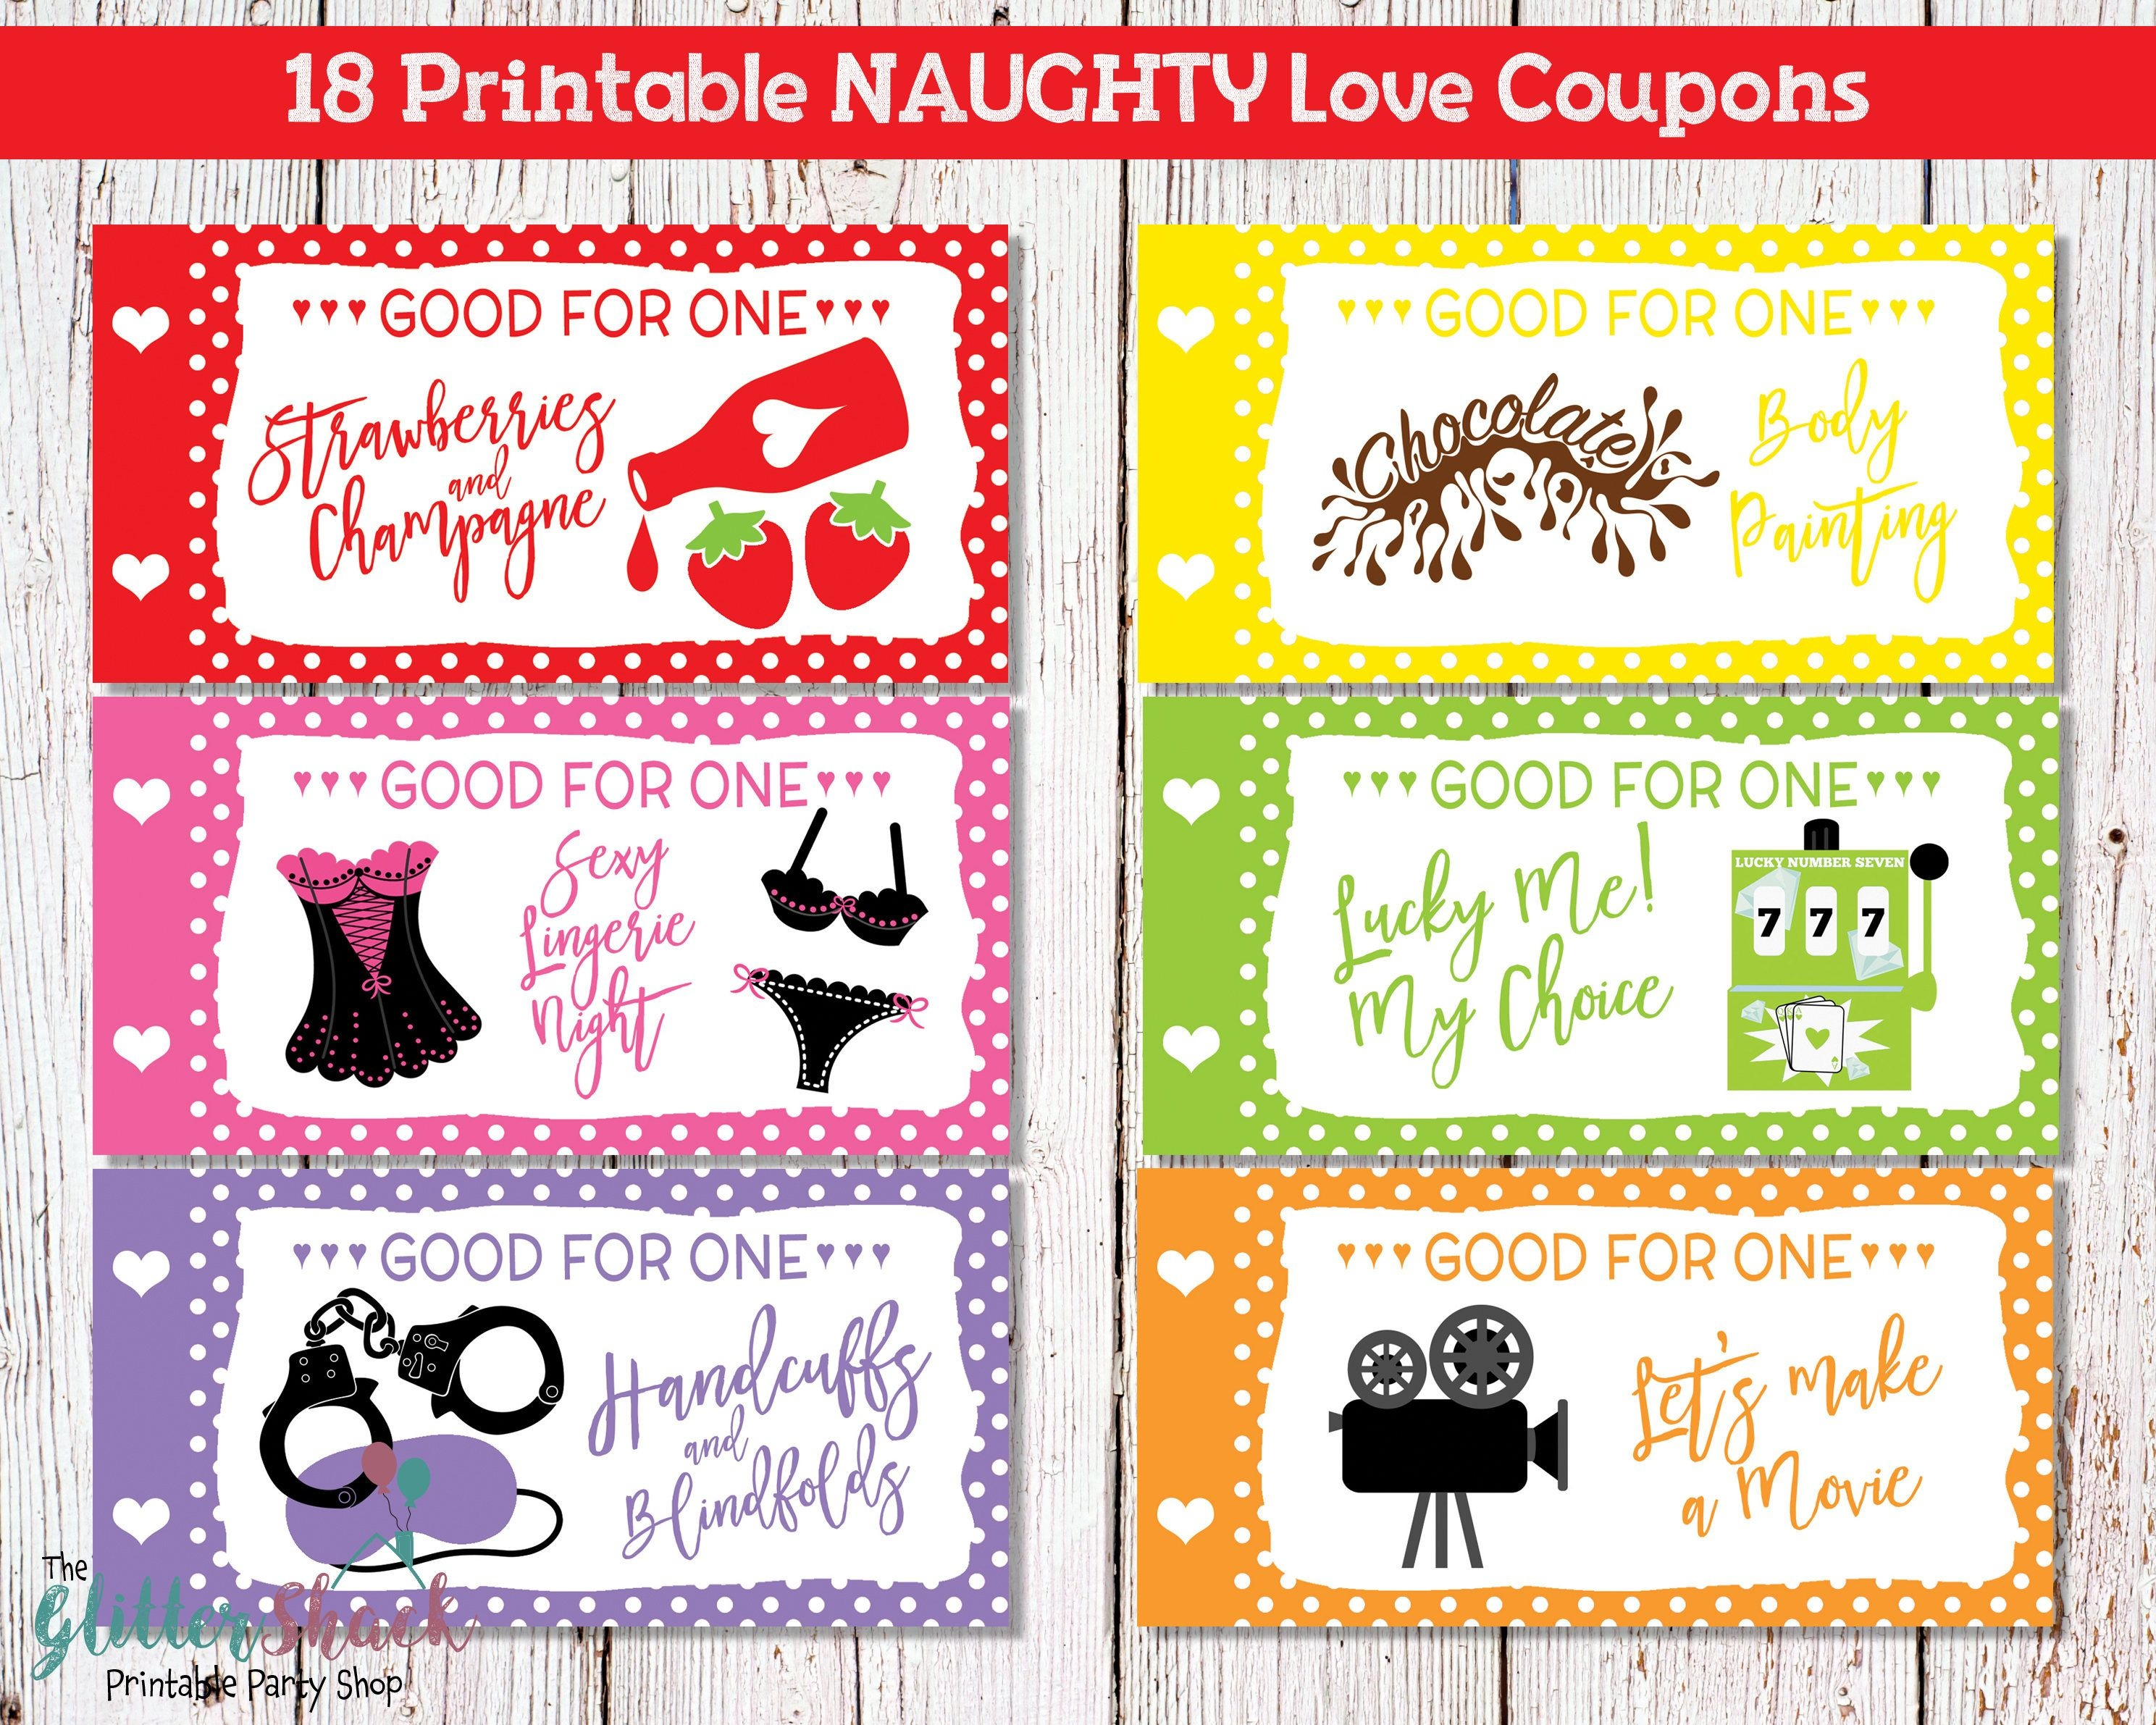 Printable Naughty Love Coupons For Men Husband Boyfriend, Sexy - Free Printable Love Certificates For Him